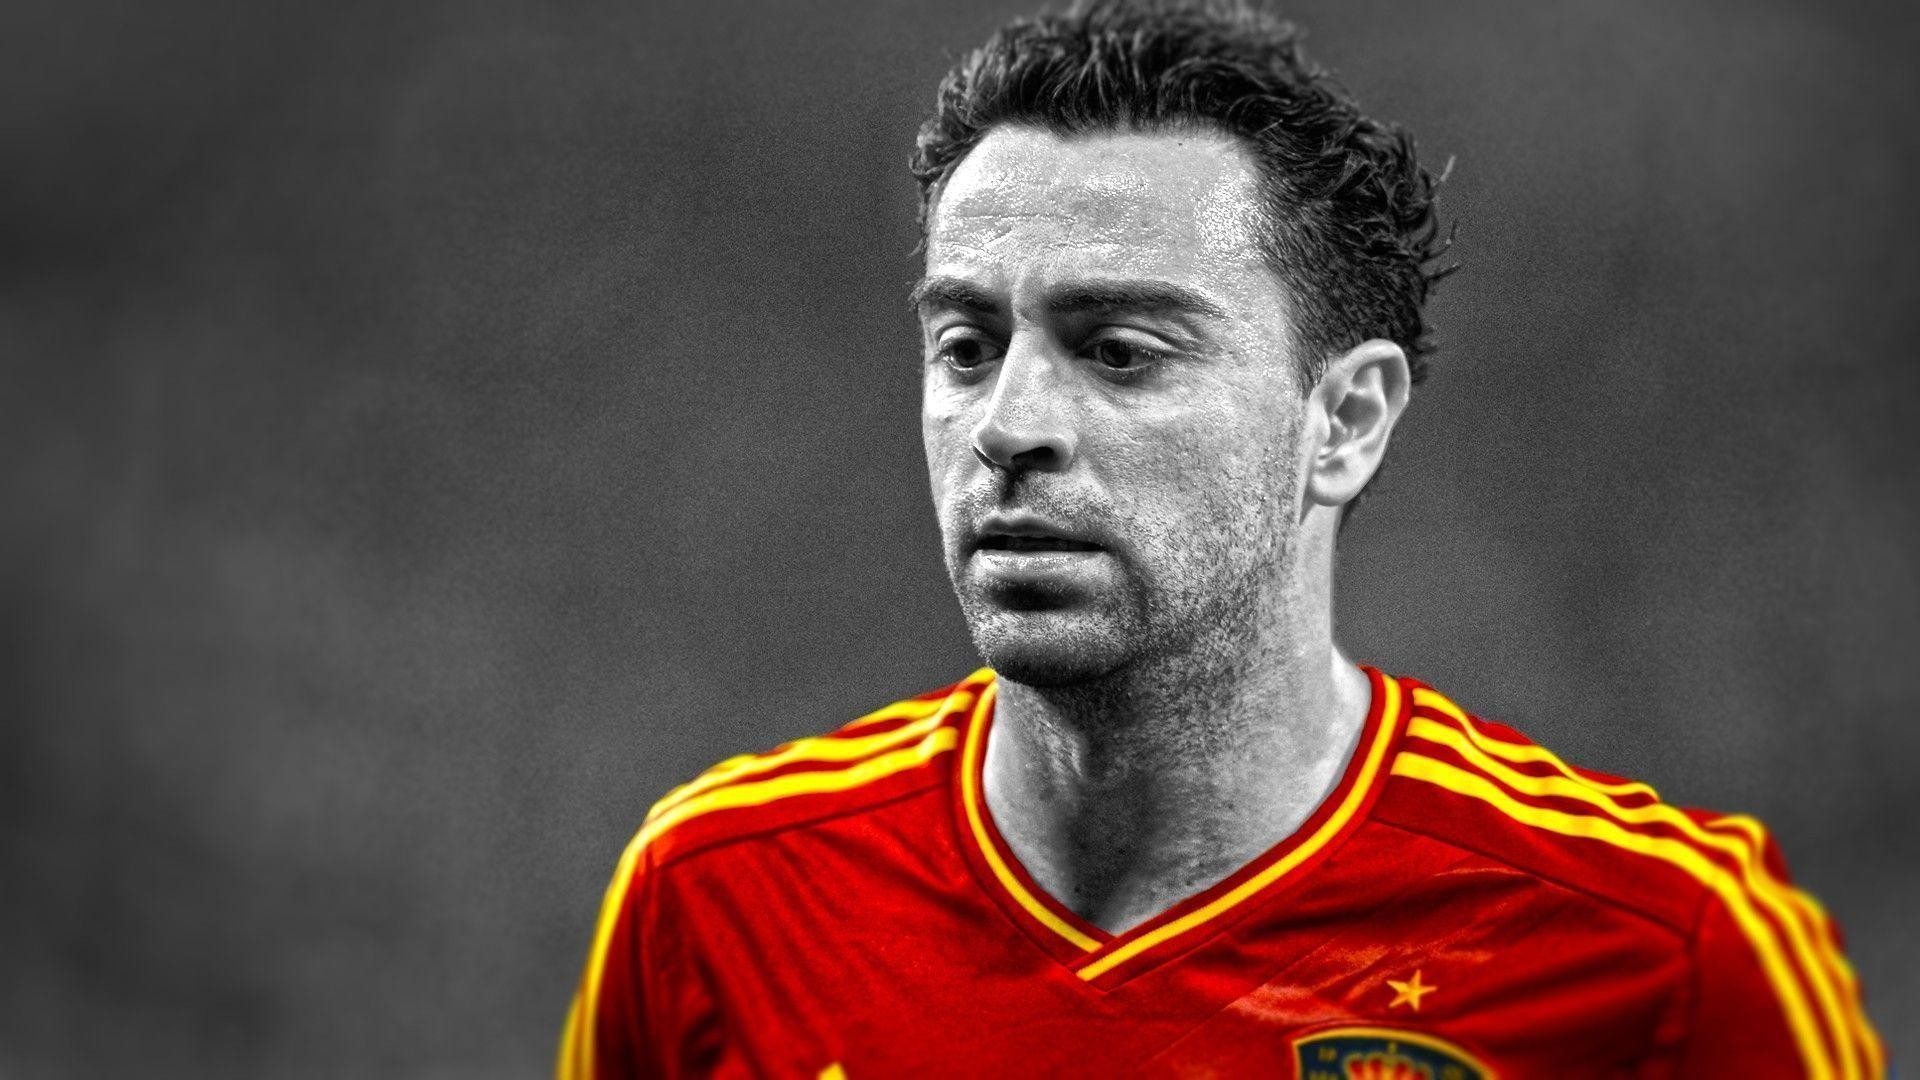 1920x1080 Xavi HD Wallpapers - Wallpaper Cave